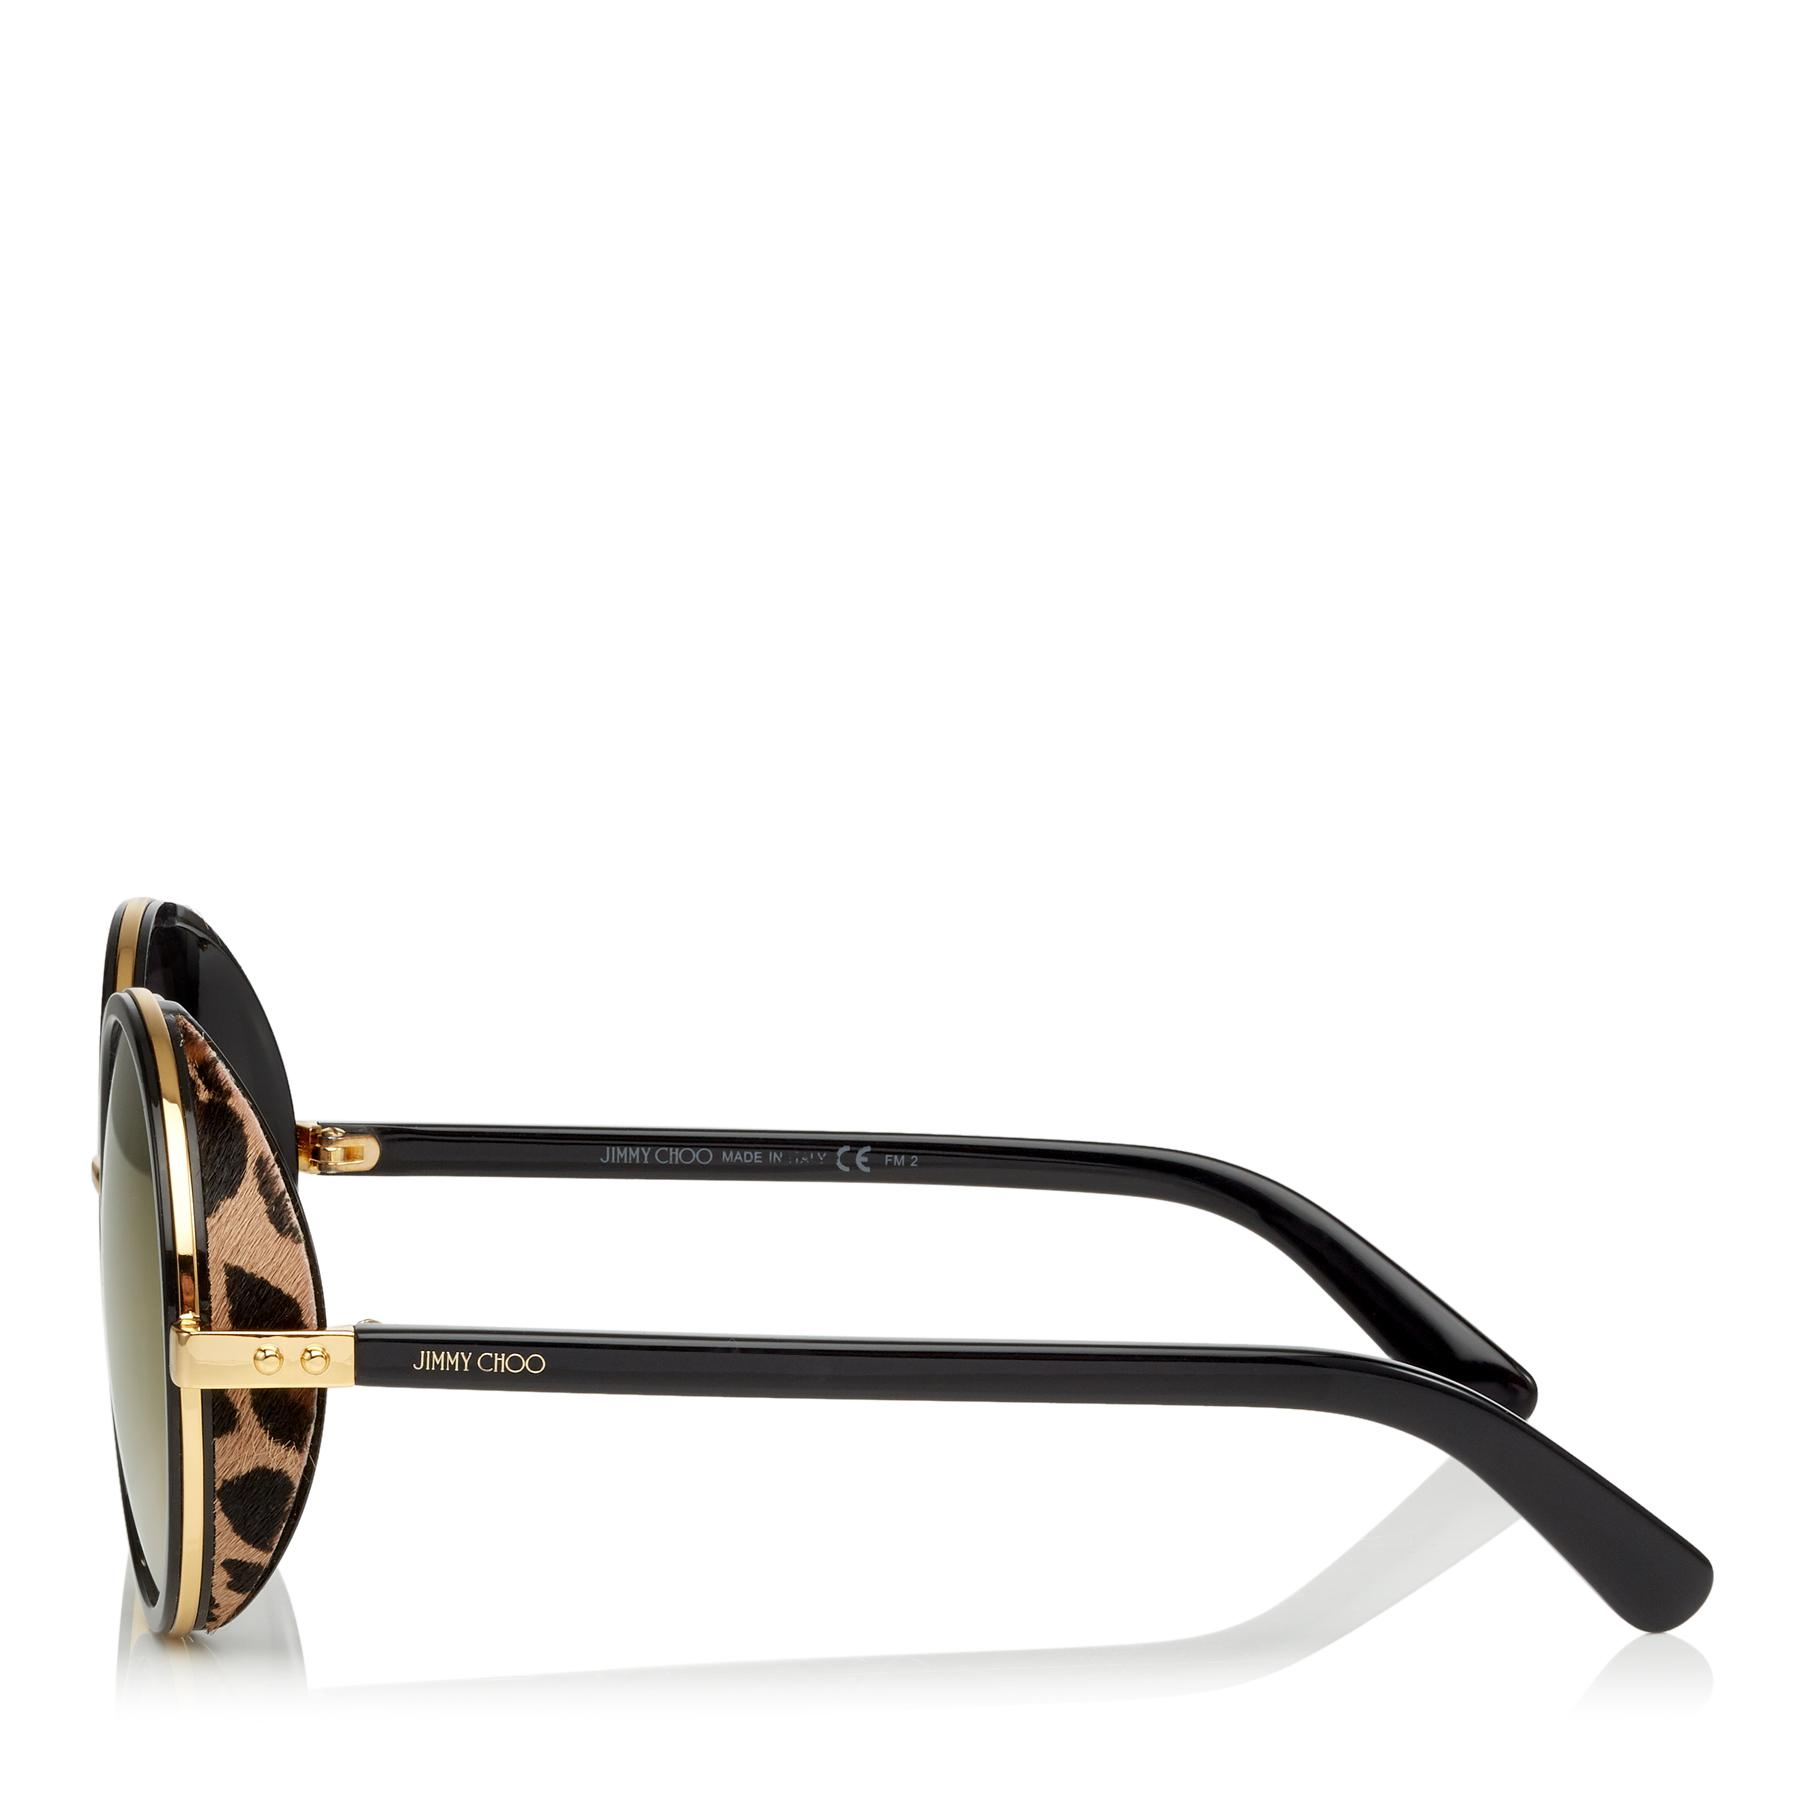 a68f6d10bb1 Jimmy Choo - Multicolor Andie Black Acetate Round Framed Sunglasses With  Leapard Cavallino Leather Detailing -. View fullscreen